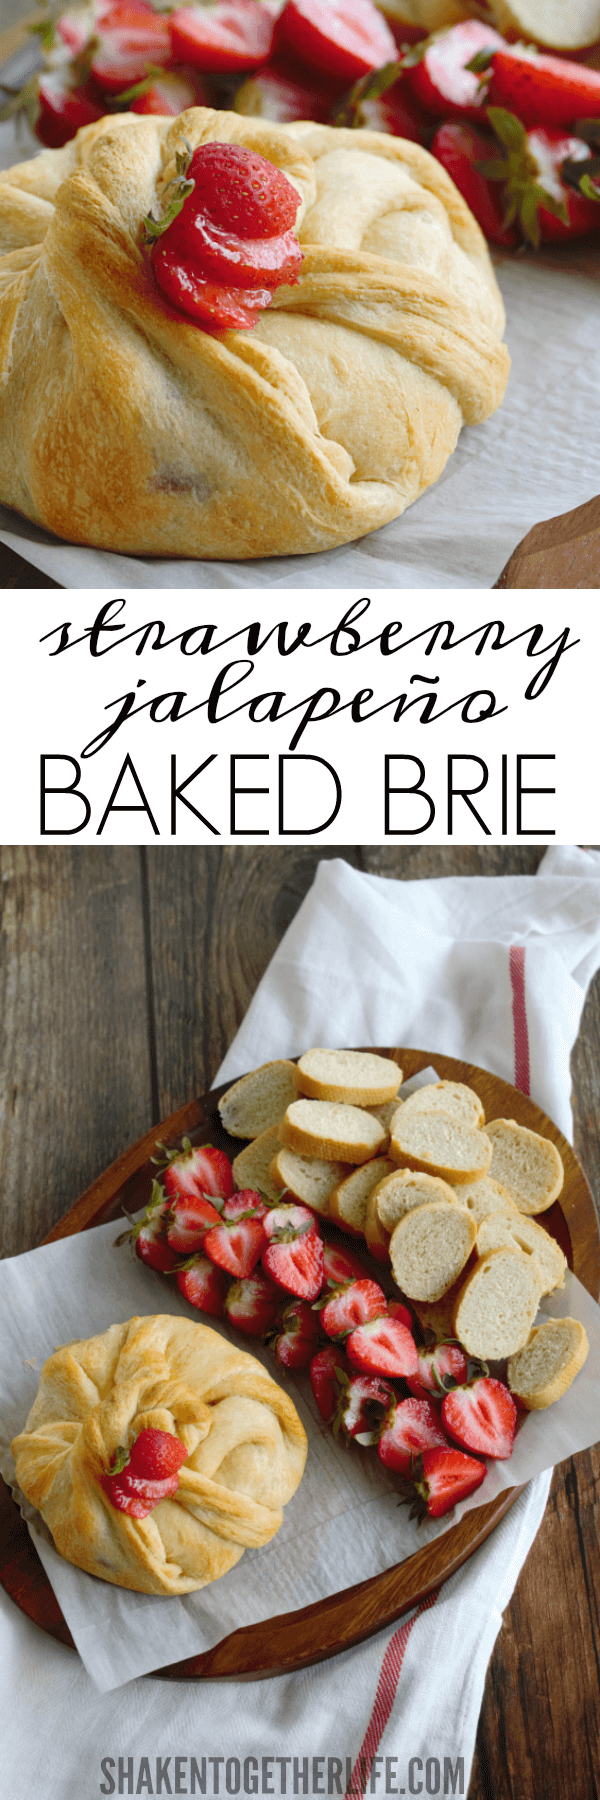 With just 3 ingredients and a sweet & spicy kick, this Strawberry Jalapeño Baked Brie will be your new favorite go-to appetizer!